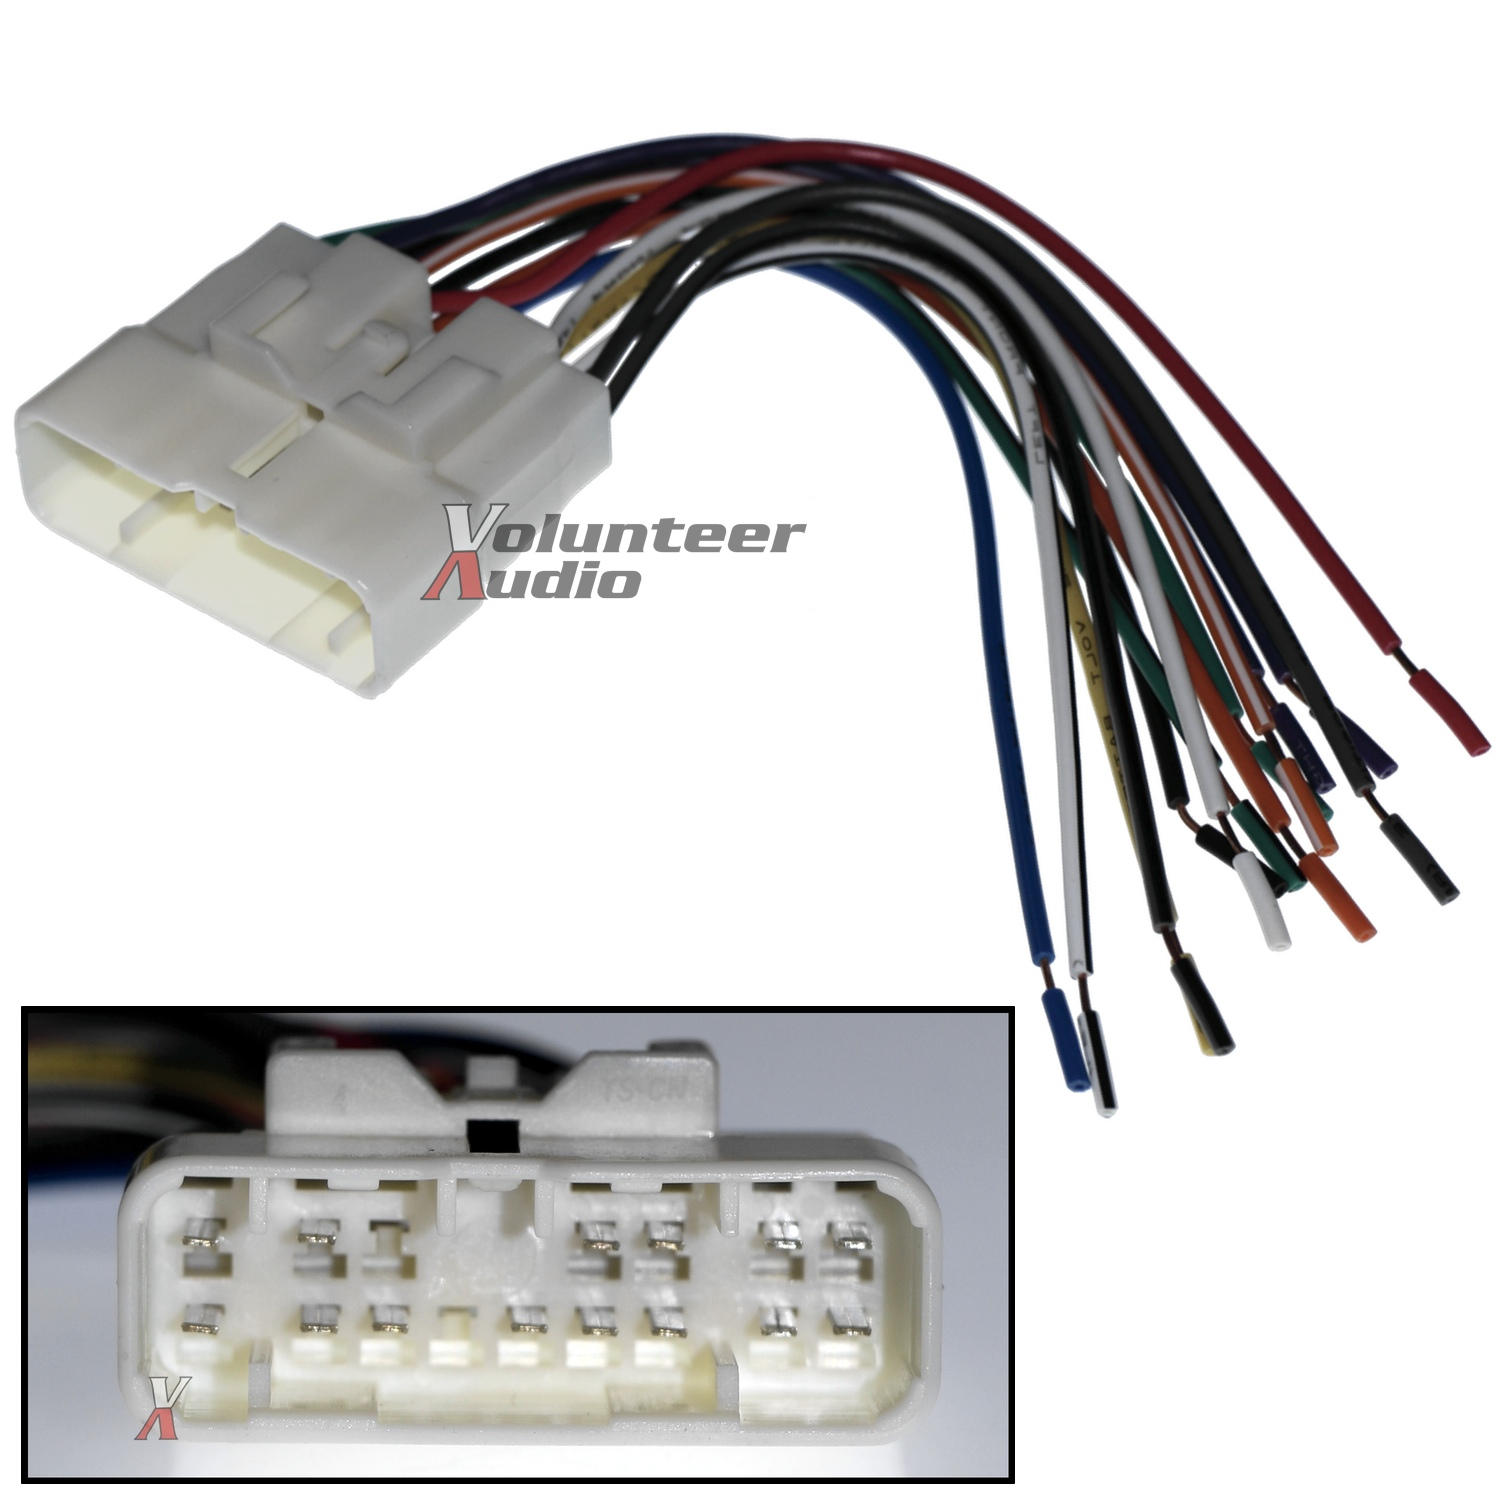 Aftermarket Car Wiring Harness : Car stereo cd player wiring harness wire aftermarket radio